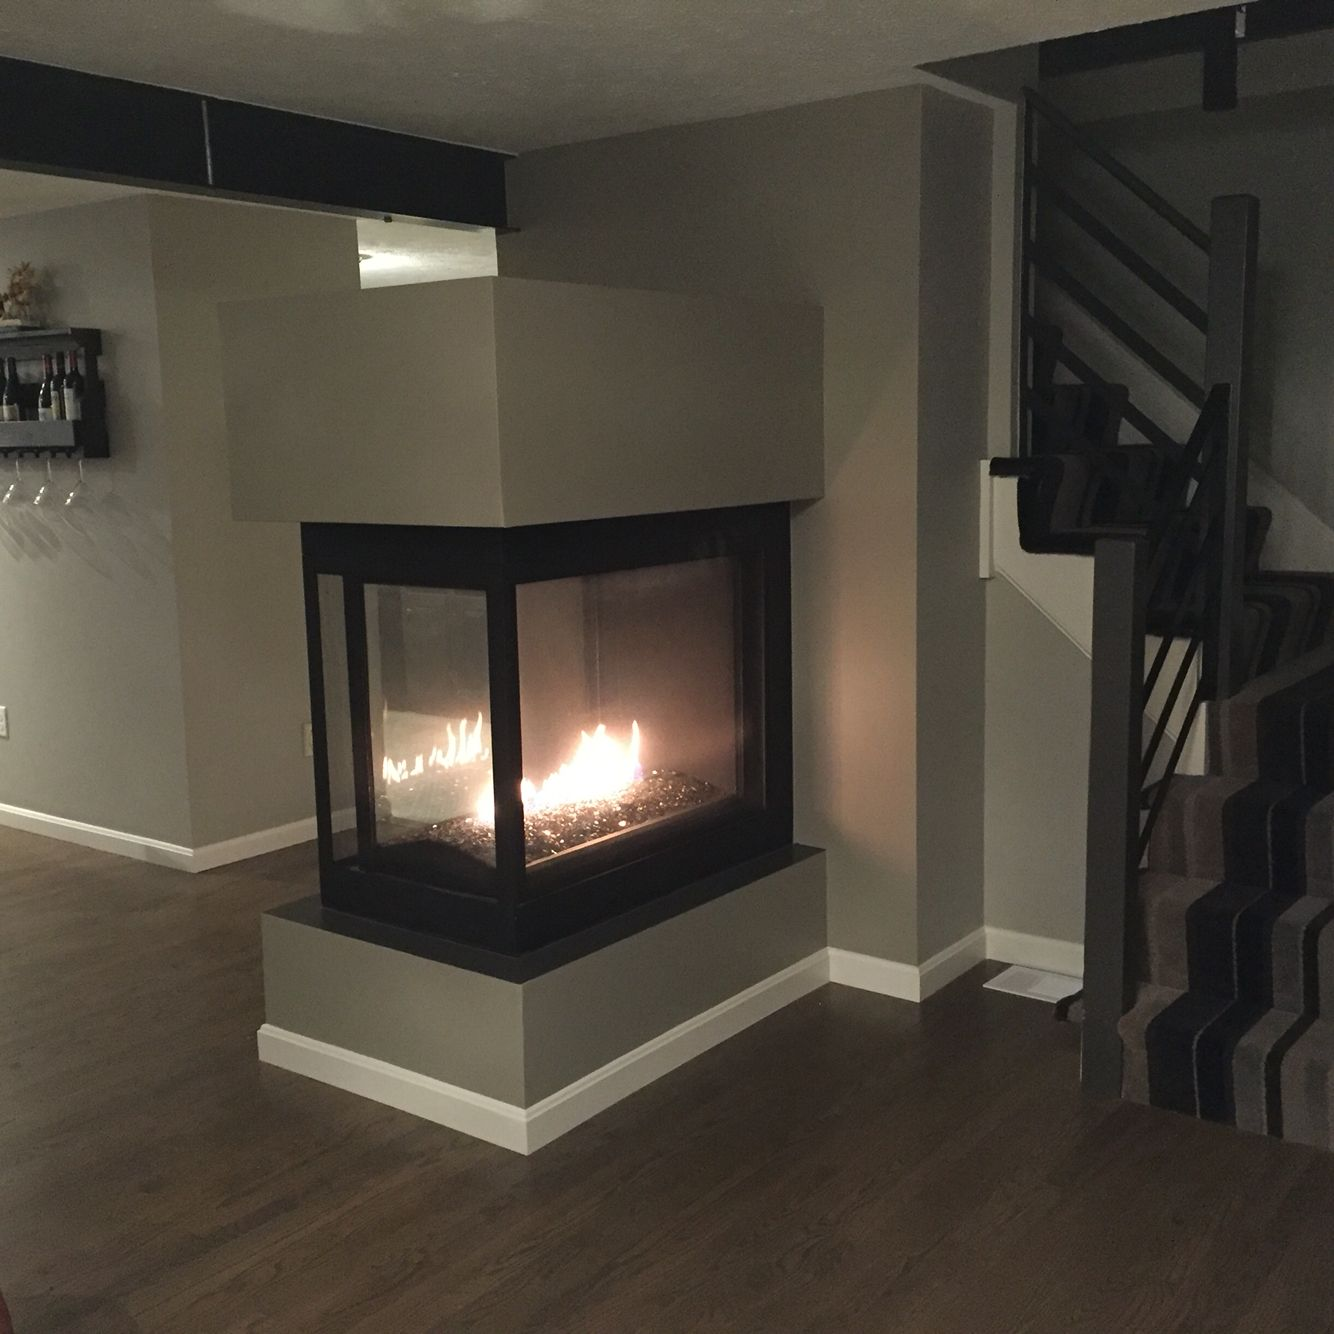 3 sided peninsula propane fireplace from napolean we re very happy rh pinterest com